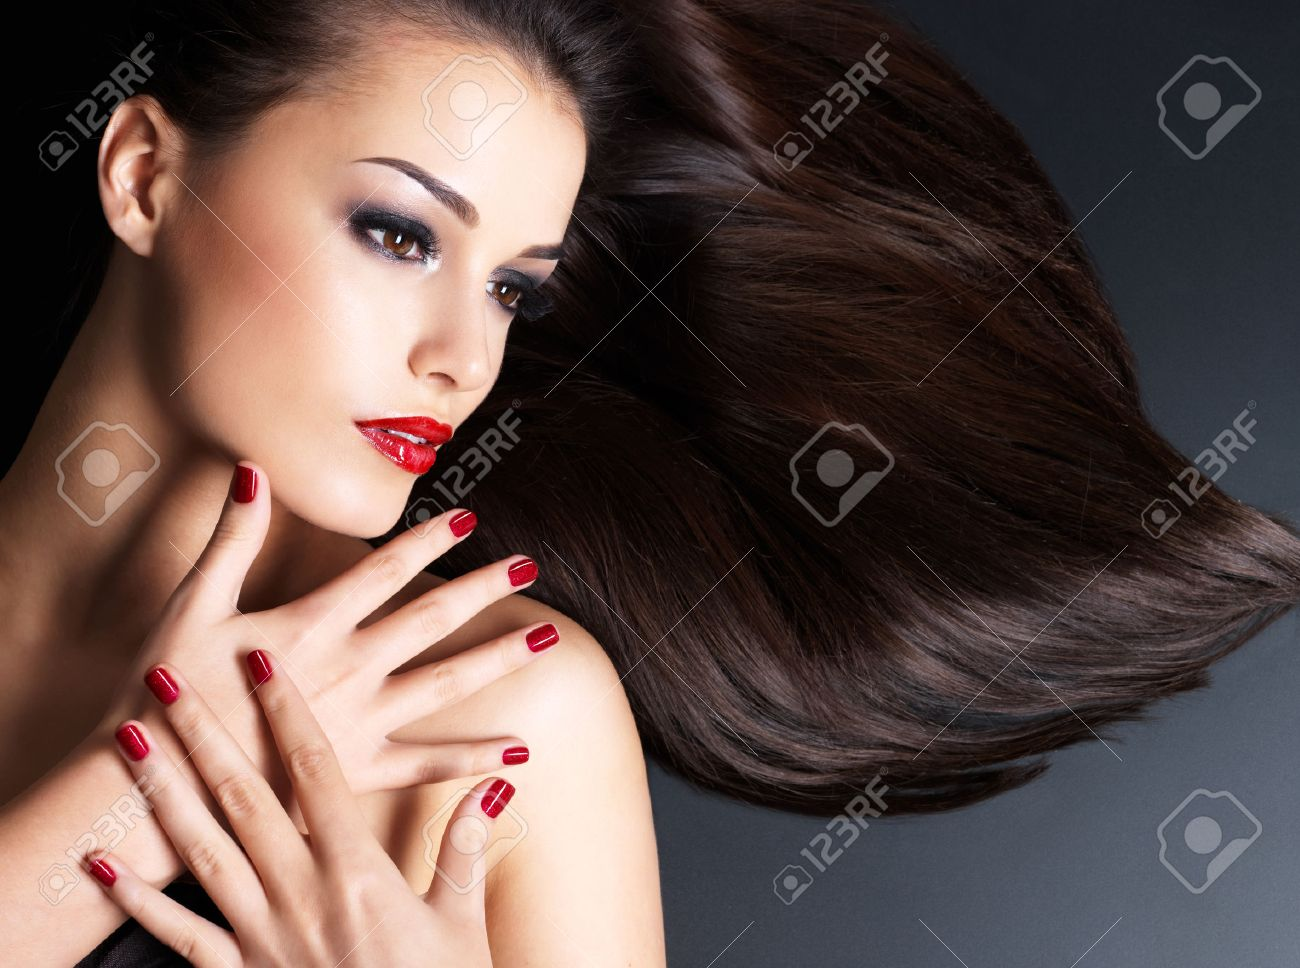 Beautiful woman with long brown straight hairs and red nails lying on the dark background Banque d'images - 54106516